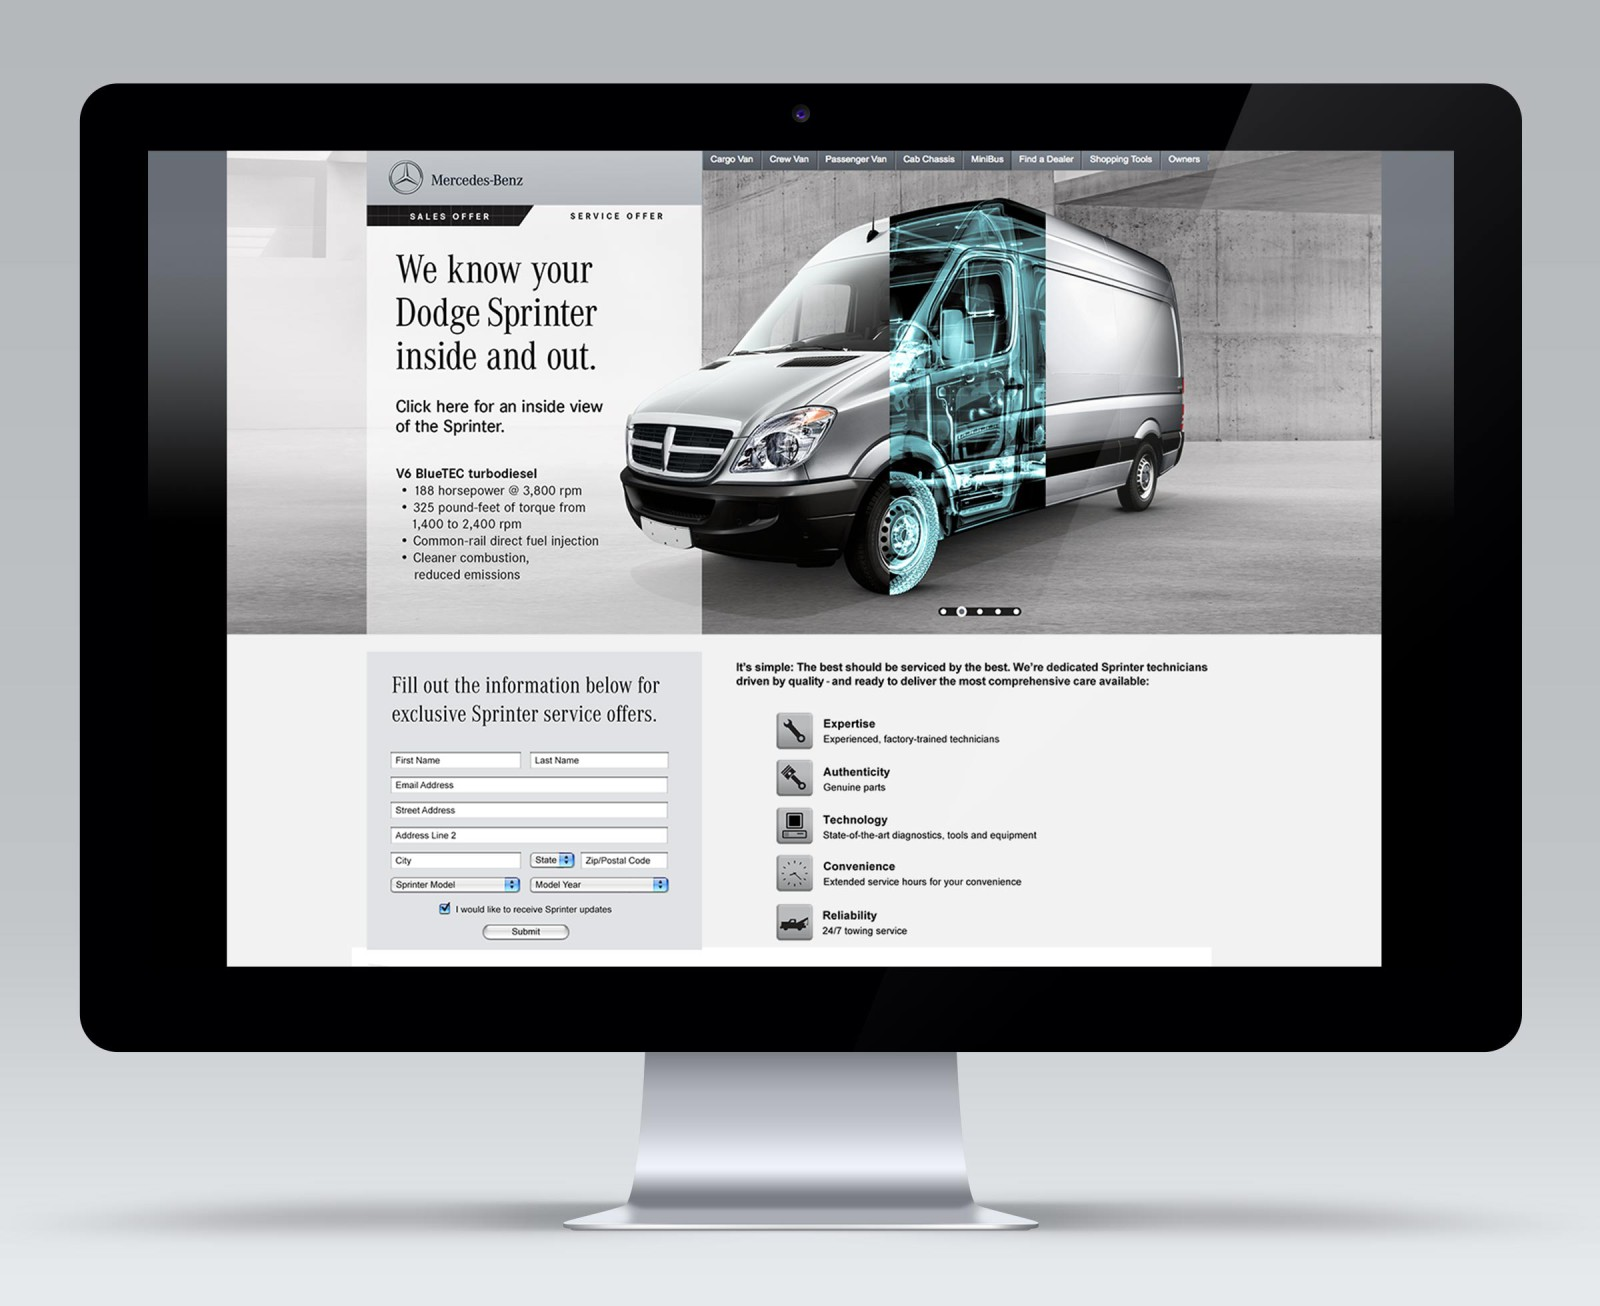 Sprinter-Inside-Out-service-web